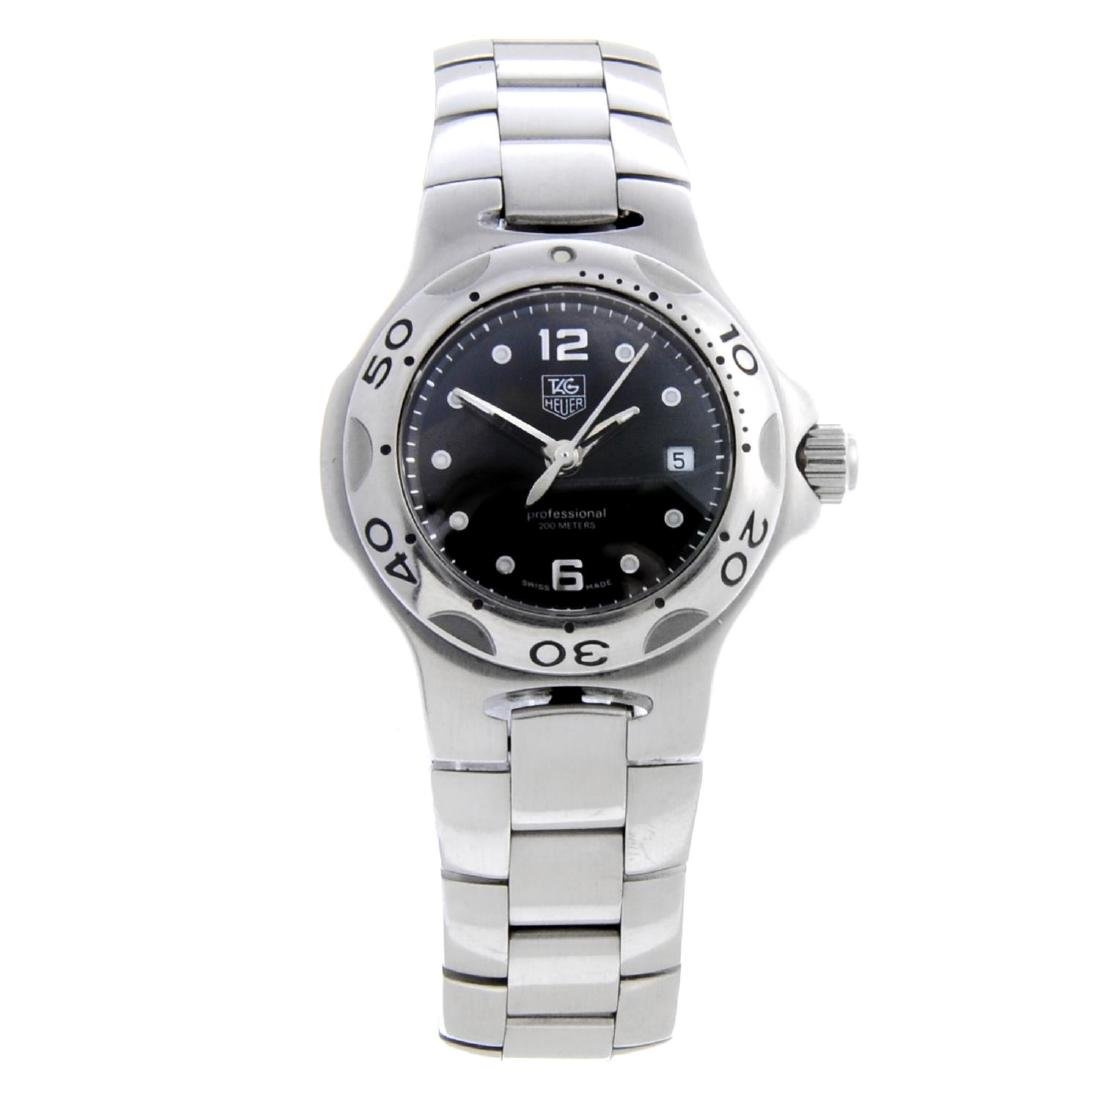 TAG HEUER - a lady's Kirium bracelet watch. Stainless